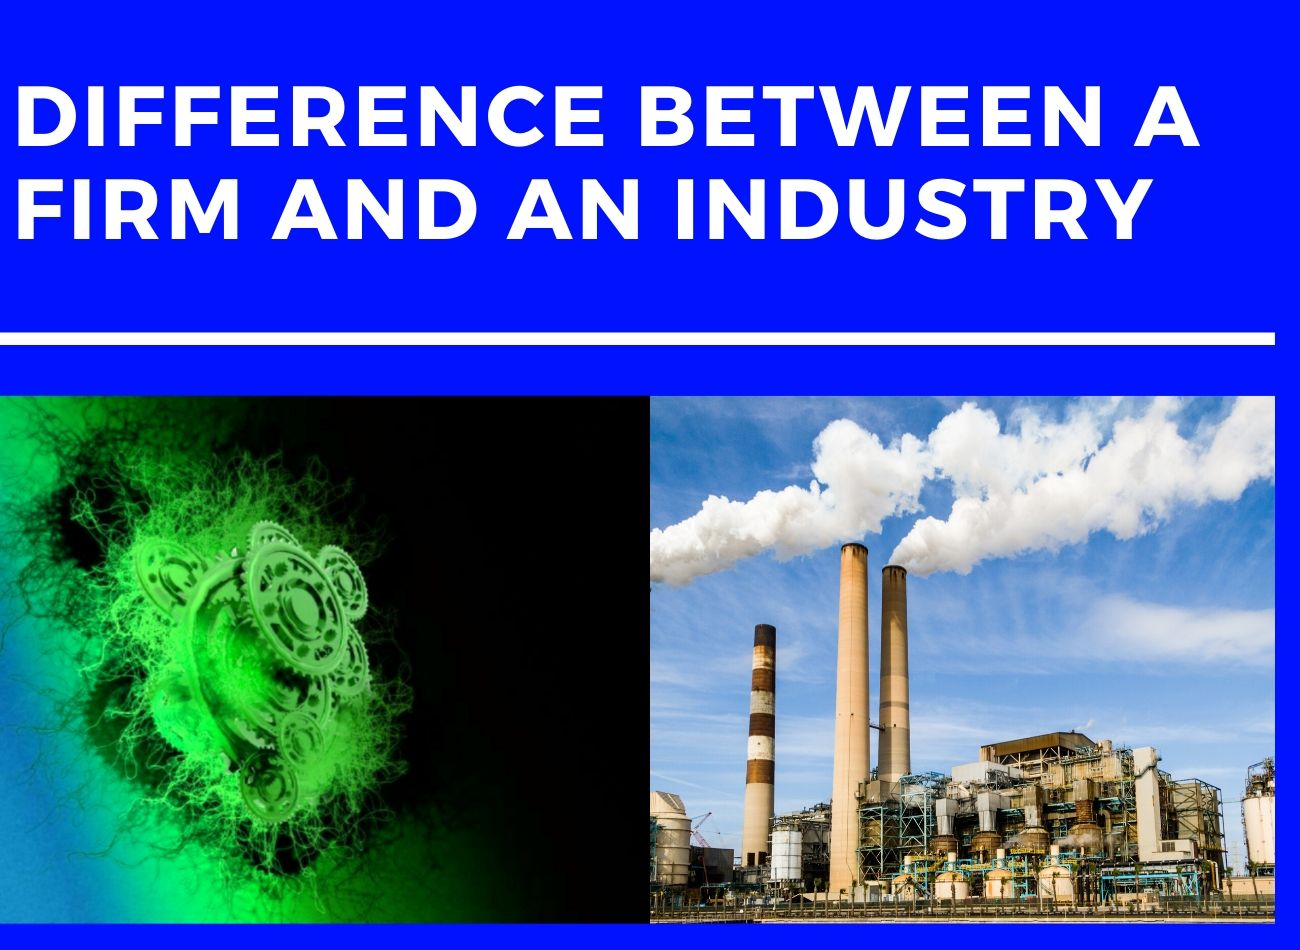 Difference between a Firm and Industry